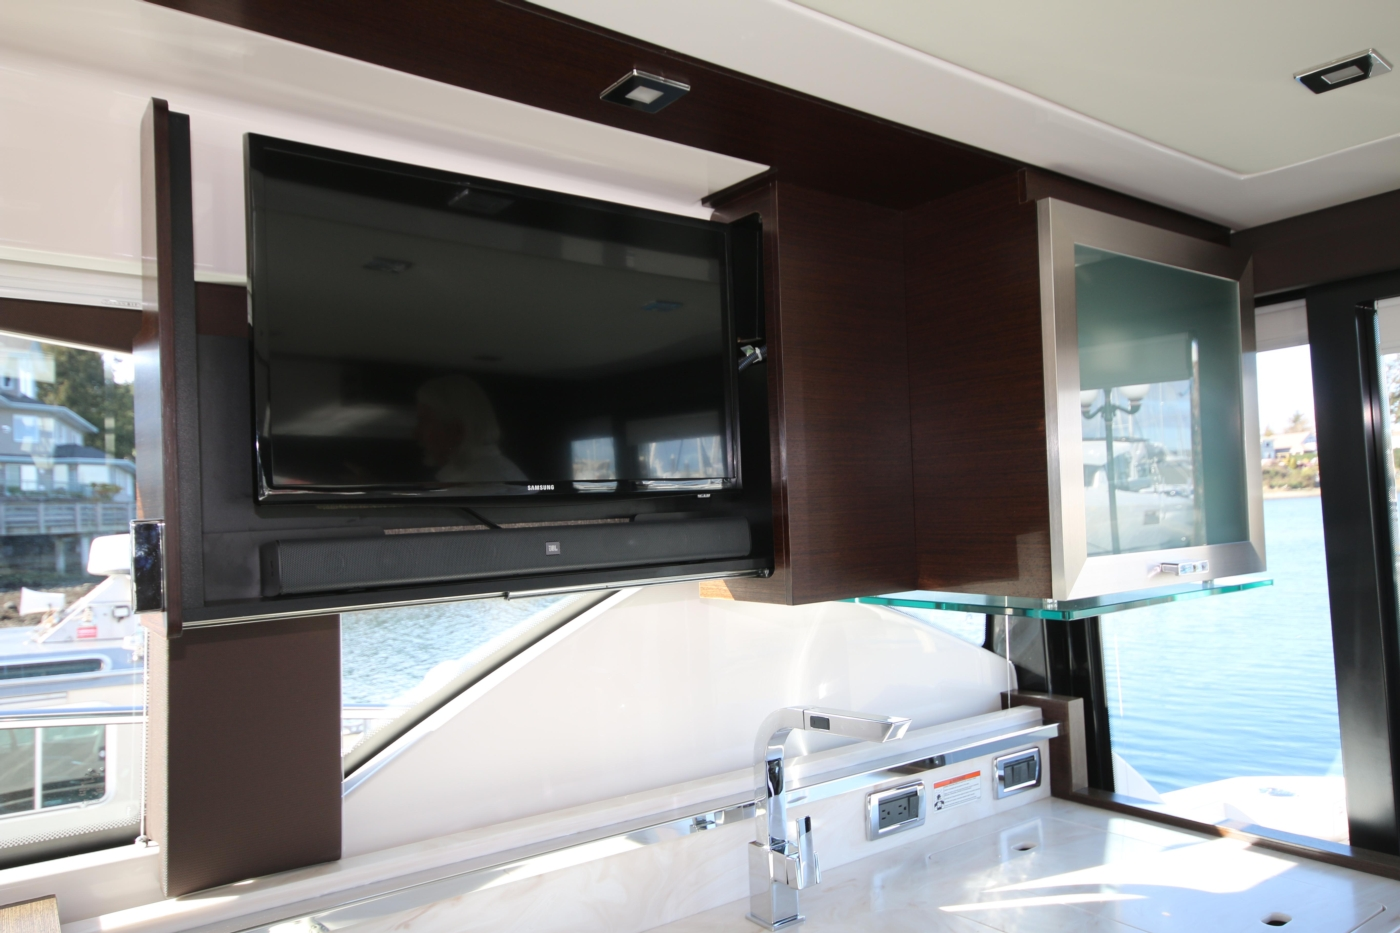 2018 Tiara Yachts 39 Coupe, Pull-out TV